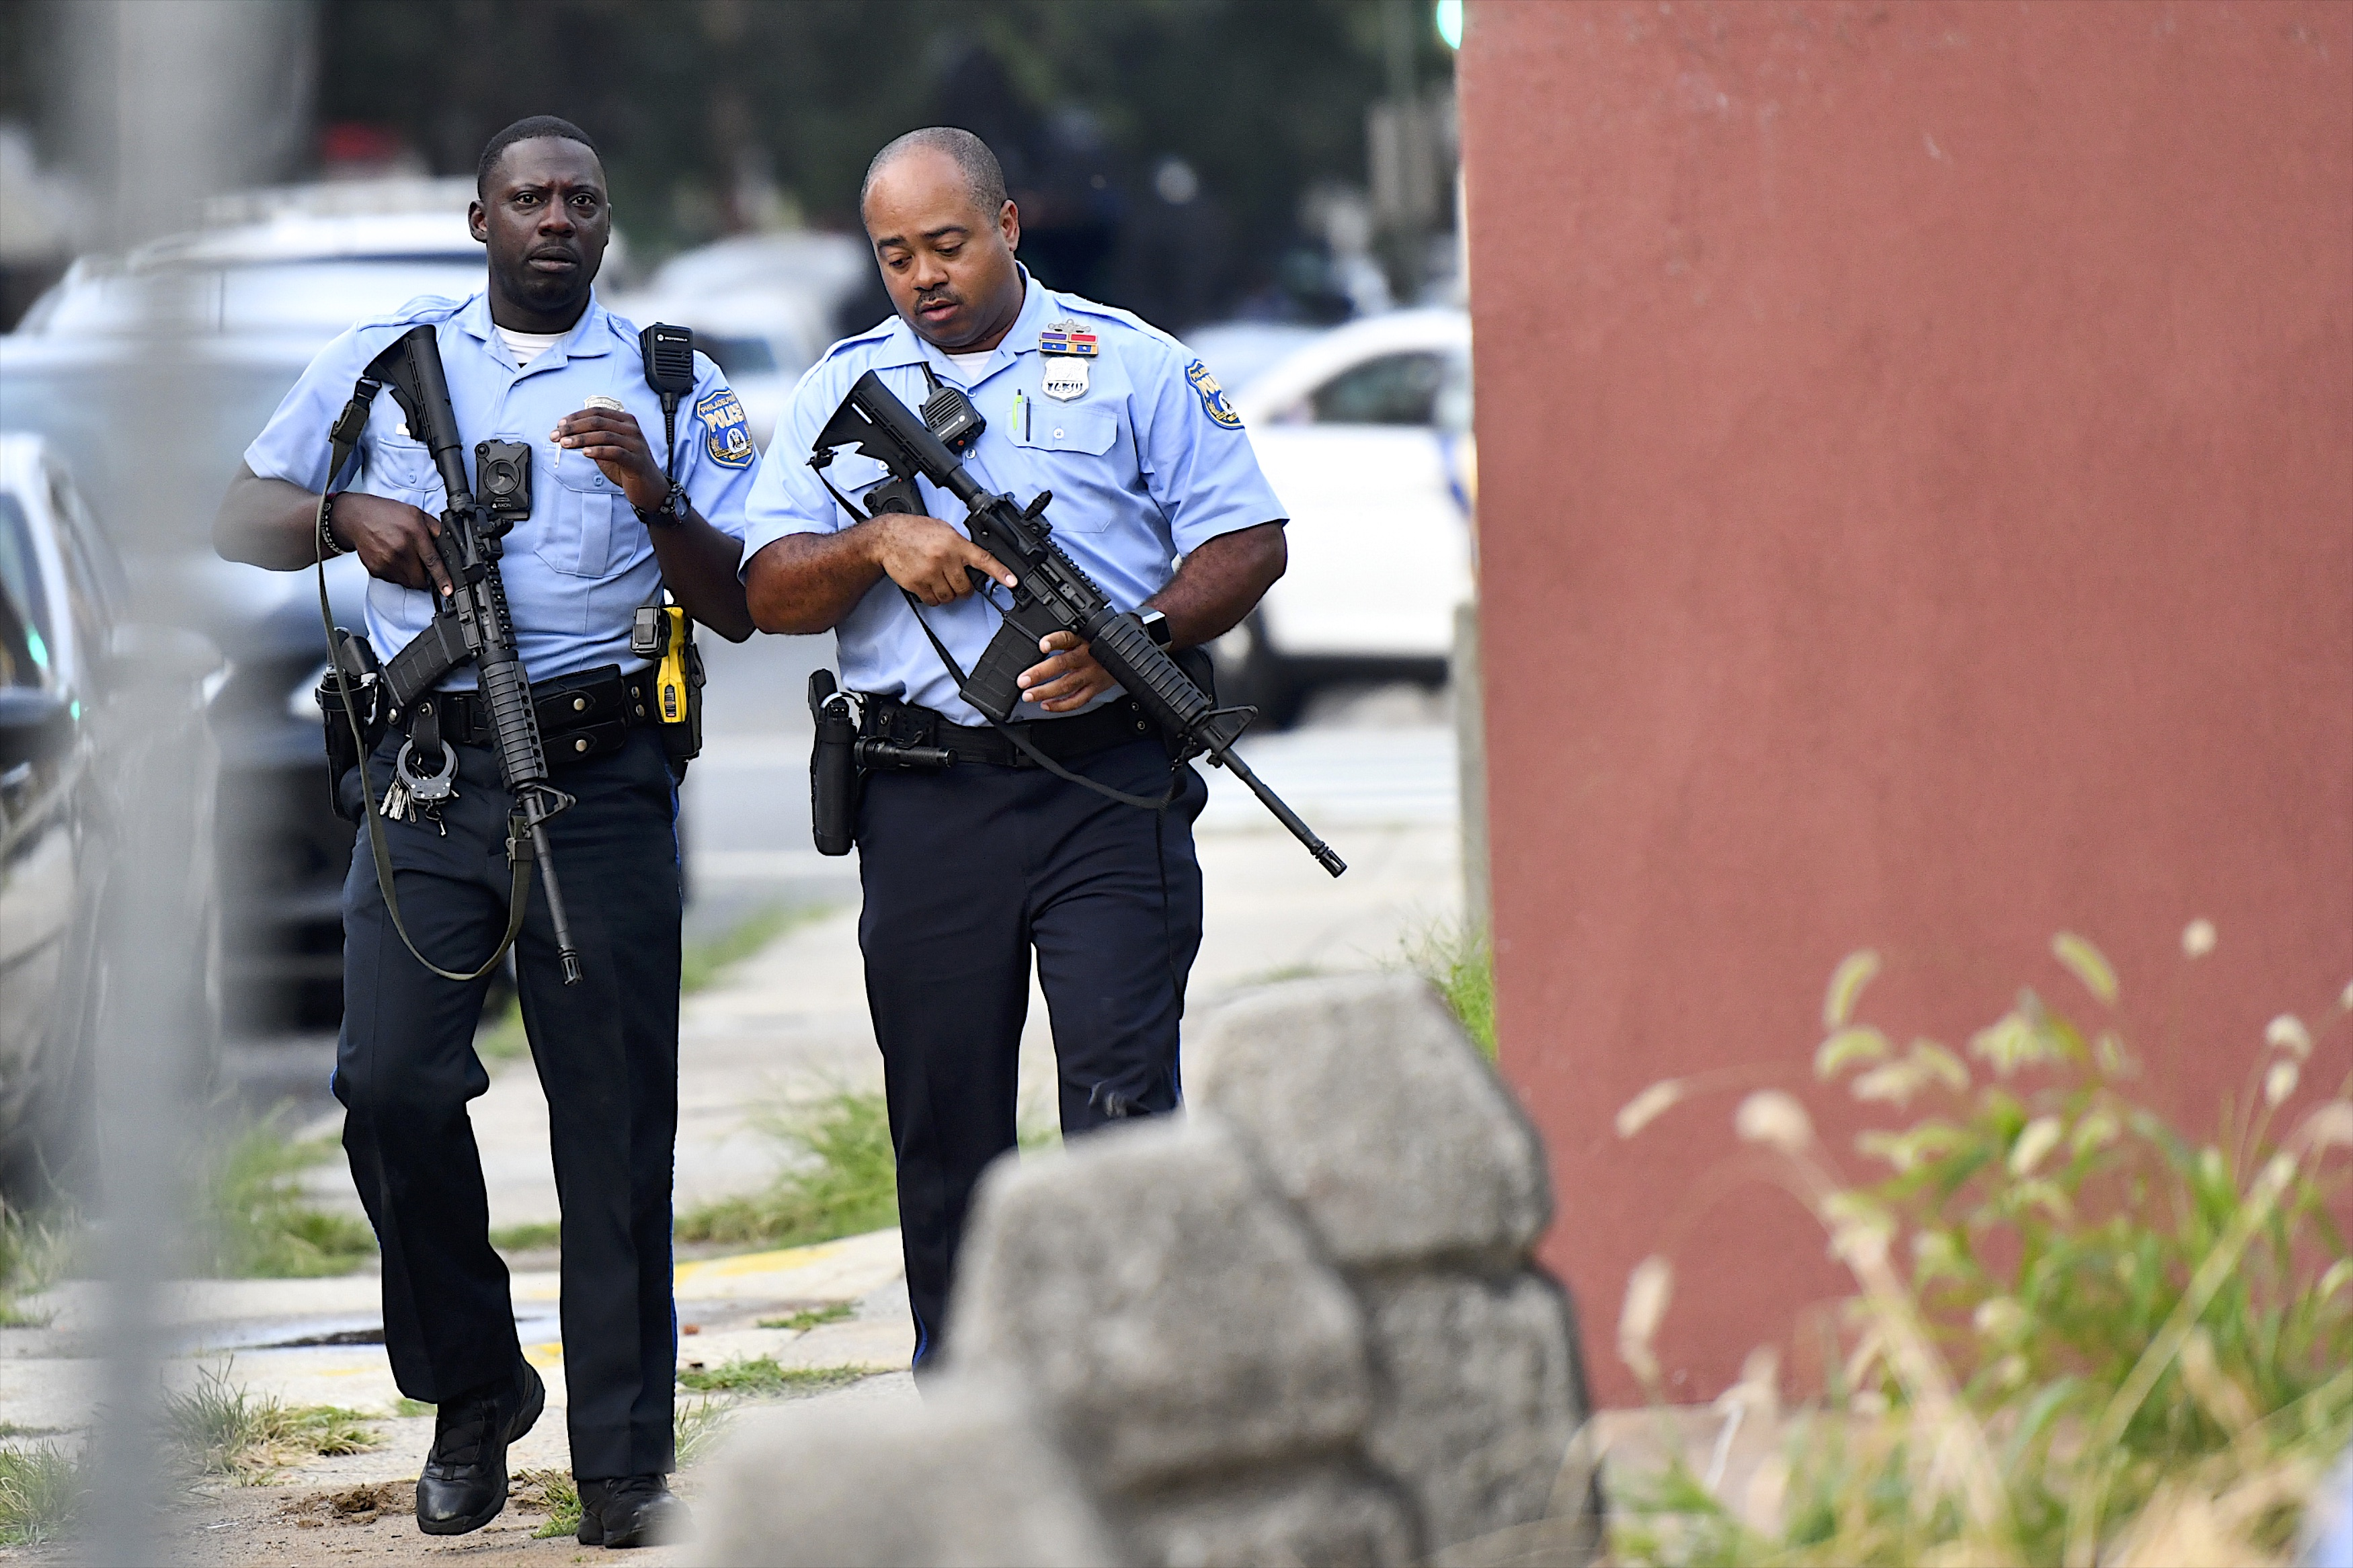 Police officers carrying assault rifles respond to a shooting on August 14, 2019 in Philadelphia.